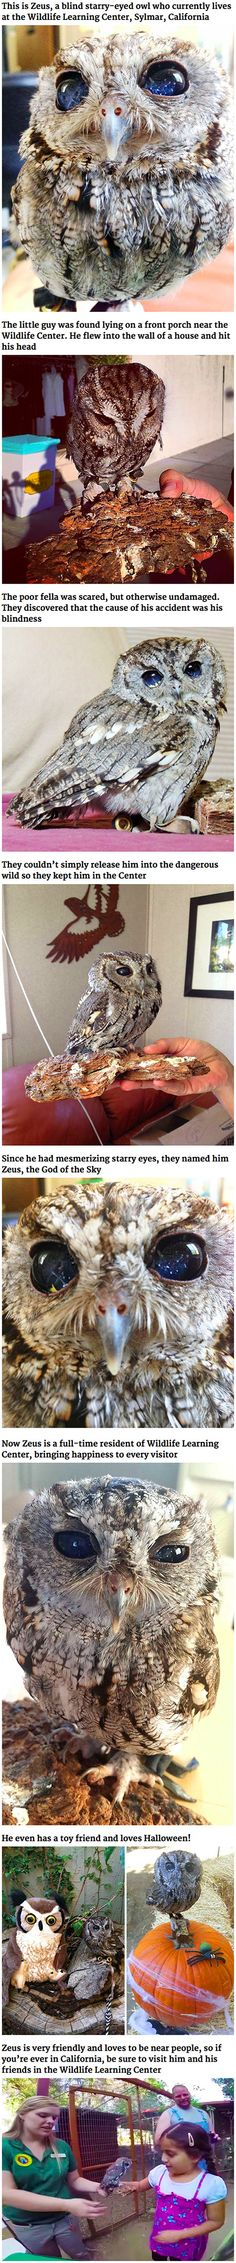 """One morning, someone in Southern California found an injured owl on their porch. It turned out to be a blind Western Screech Owl with eyes that look like a starry night. After a visit to the vet, the owl found a new permanent home at the Wildlife Learning Center in Sylmar, California. He was named """"Zeus"""" after the Greek god of sky and thunder because of his stunning eyes."""